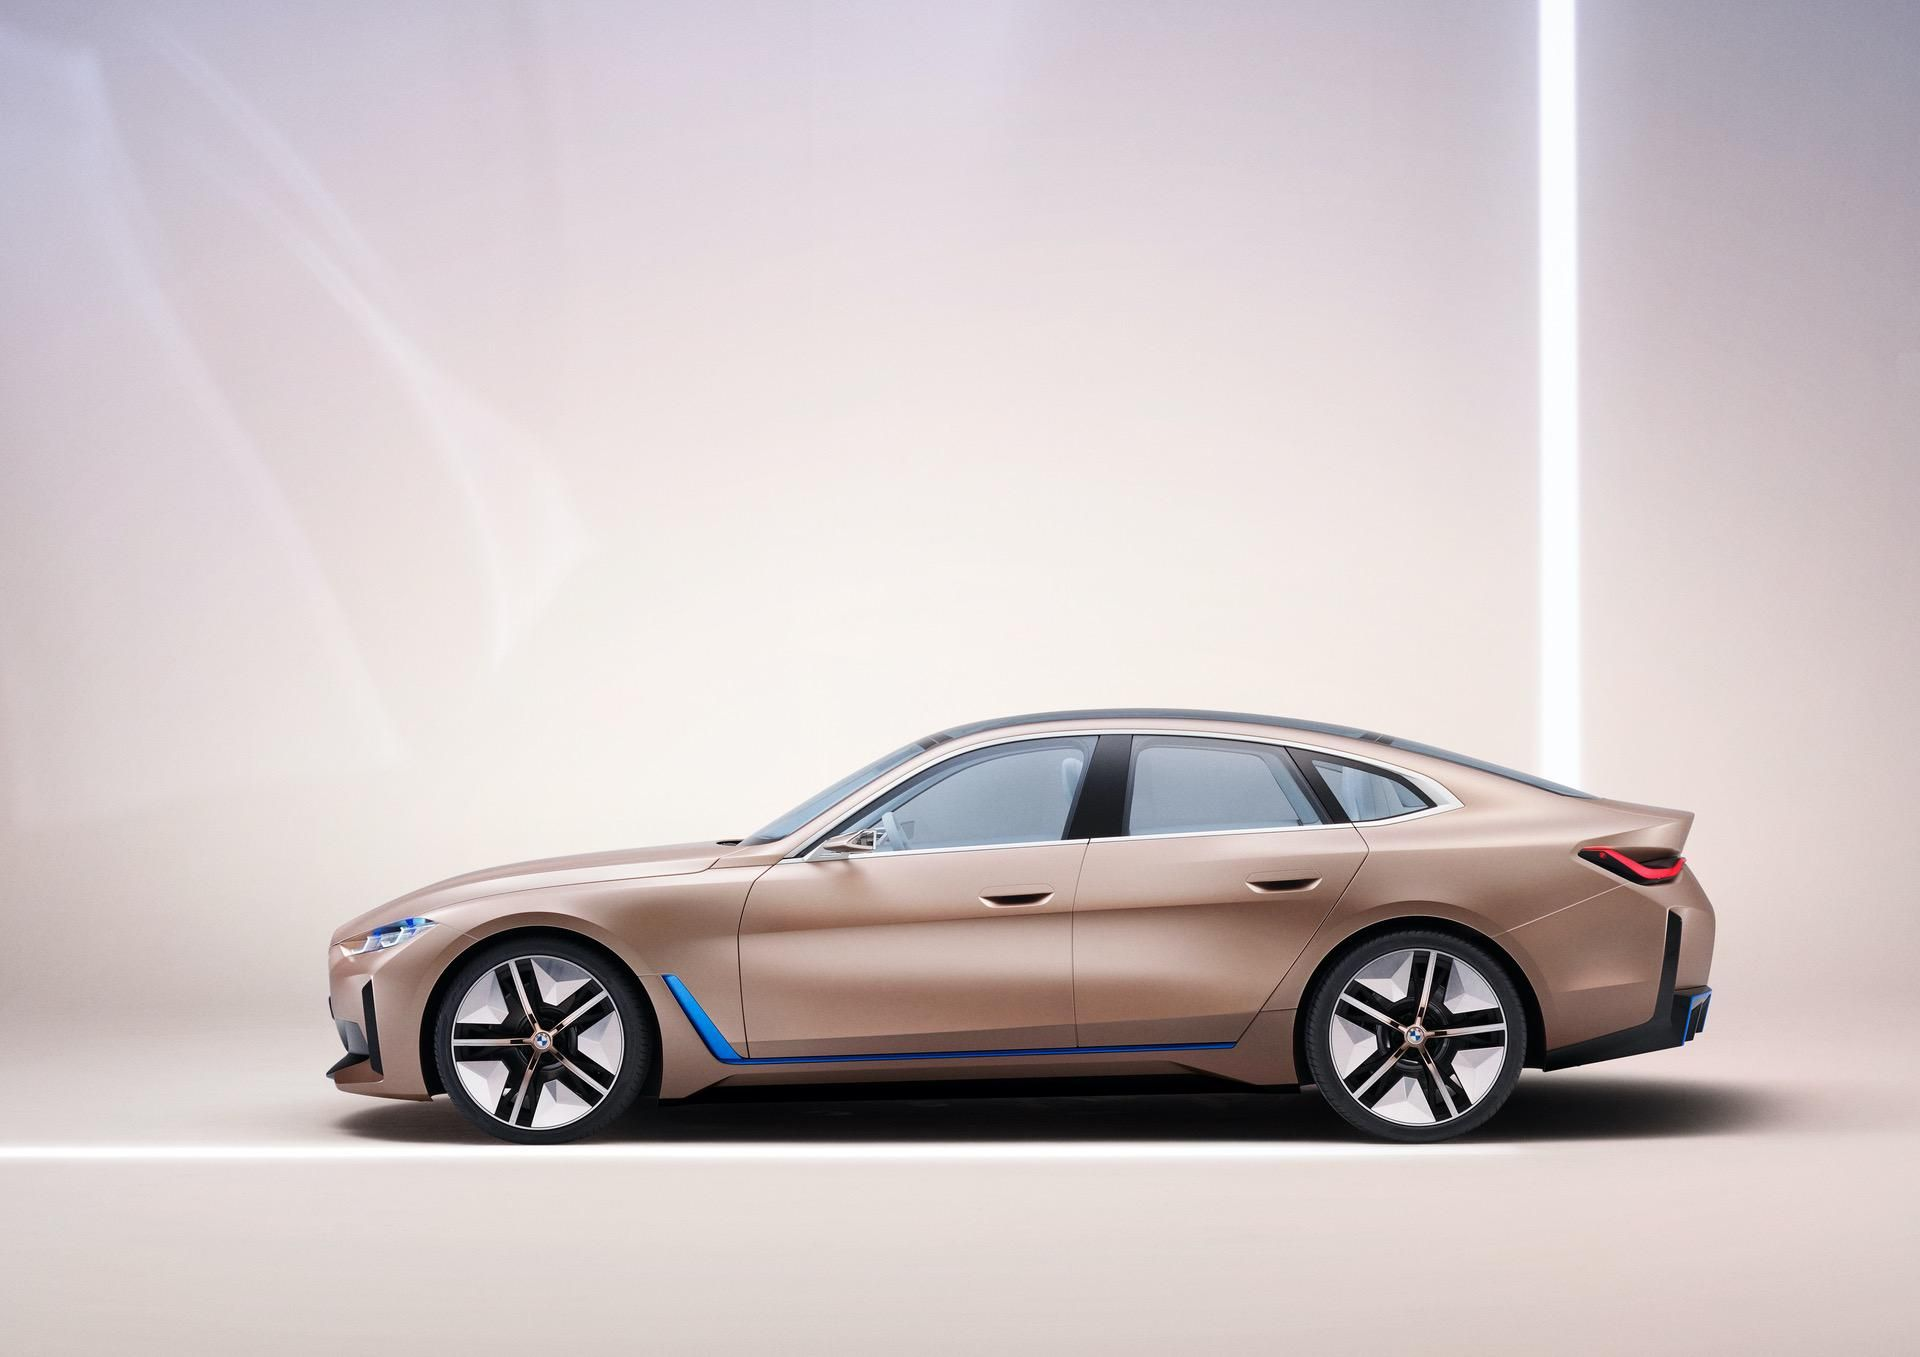 Bmw I4 Likely To Have Two Powertrains Rwd And Awd Bmw Concept